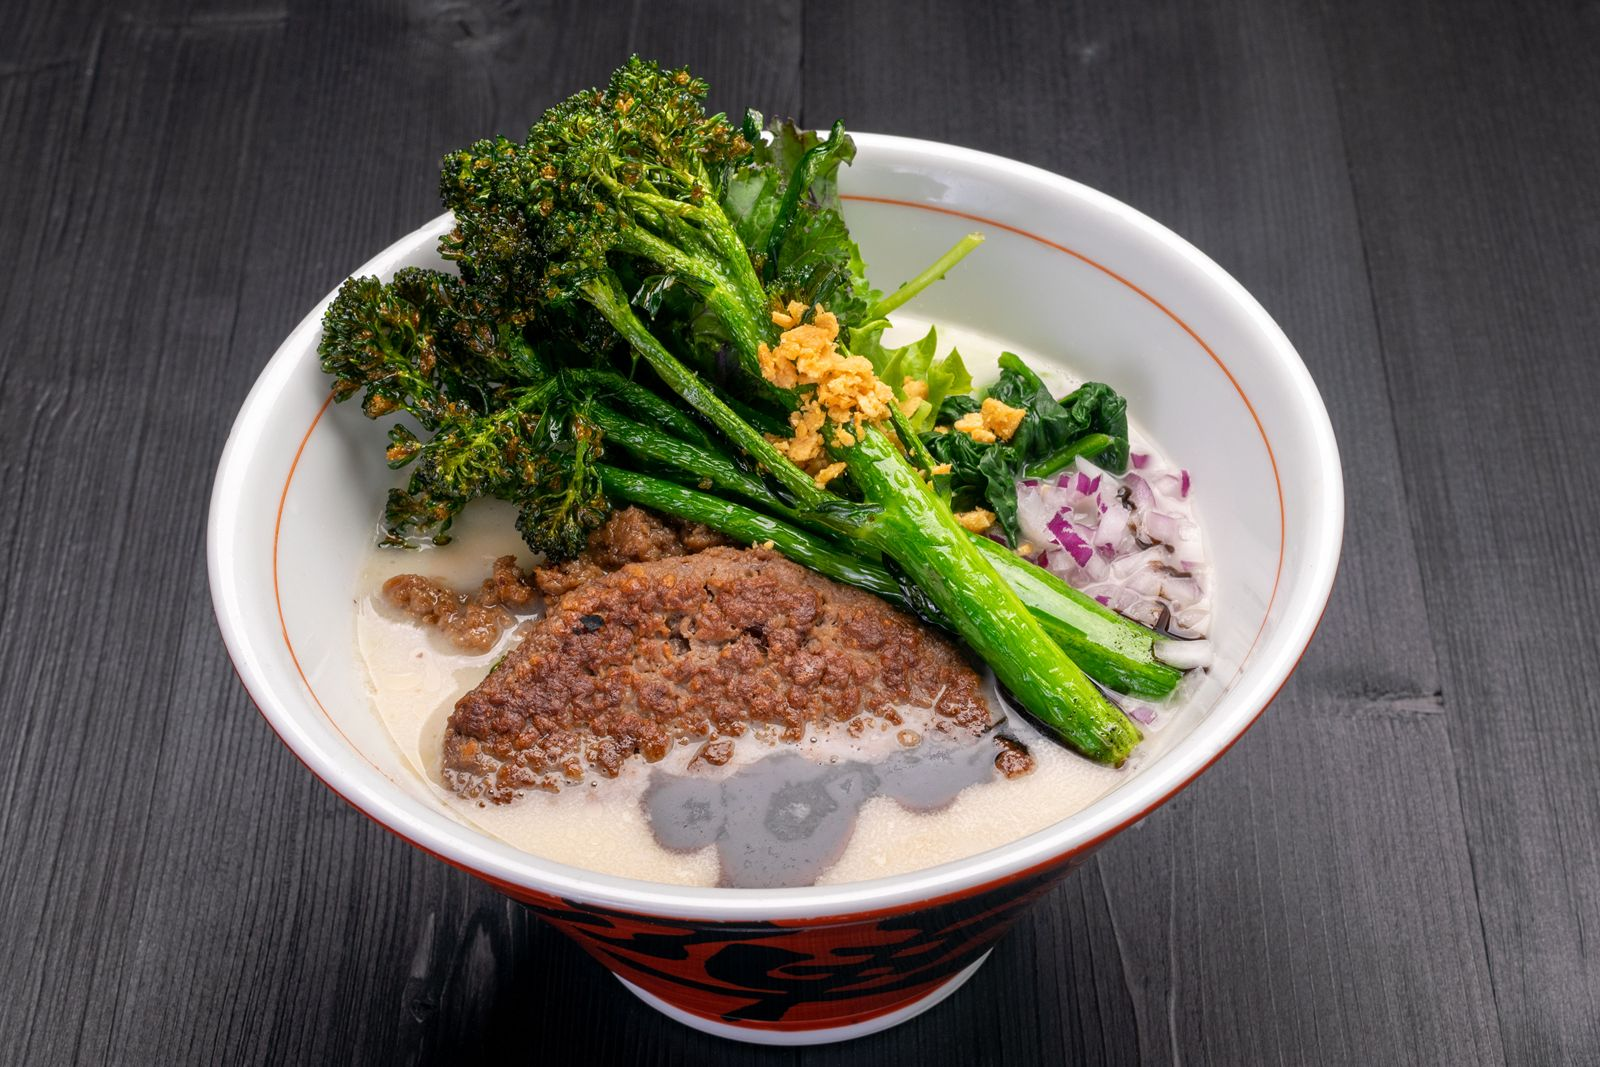 JINYA Ramen Bar Launches New Menu Items Made with Impossible Meat Made From Plants